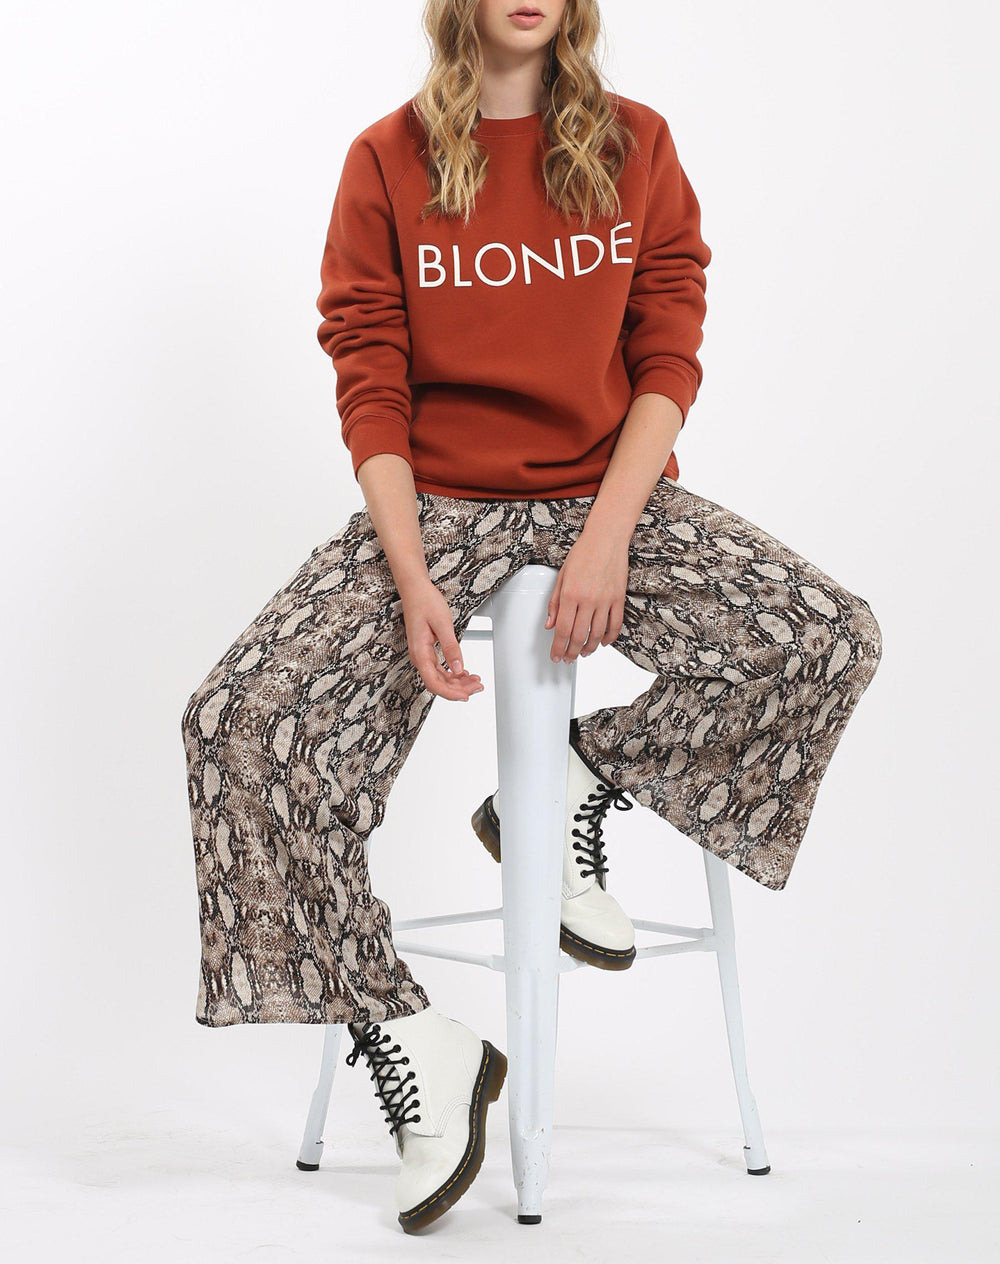 "Brunette The Label ""Blonde"" Classic in Rust-The Trendy Walrus"